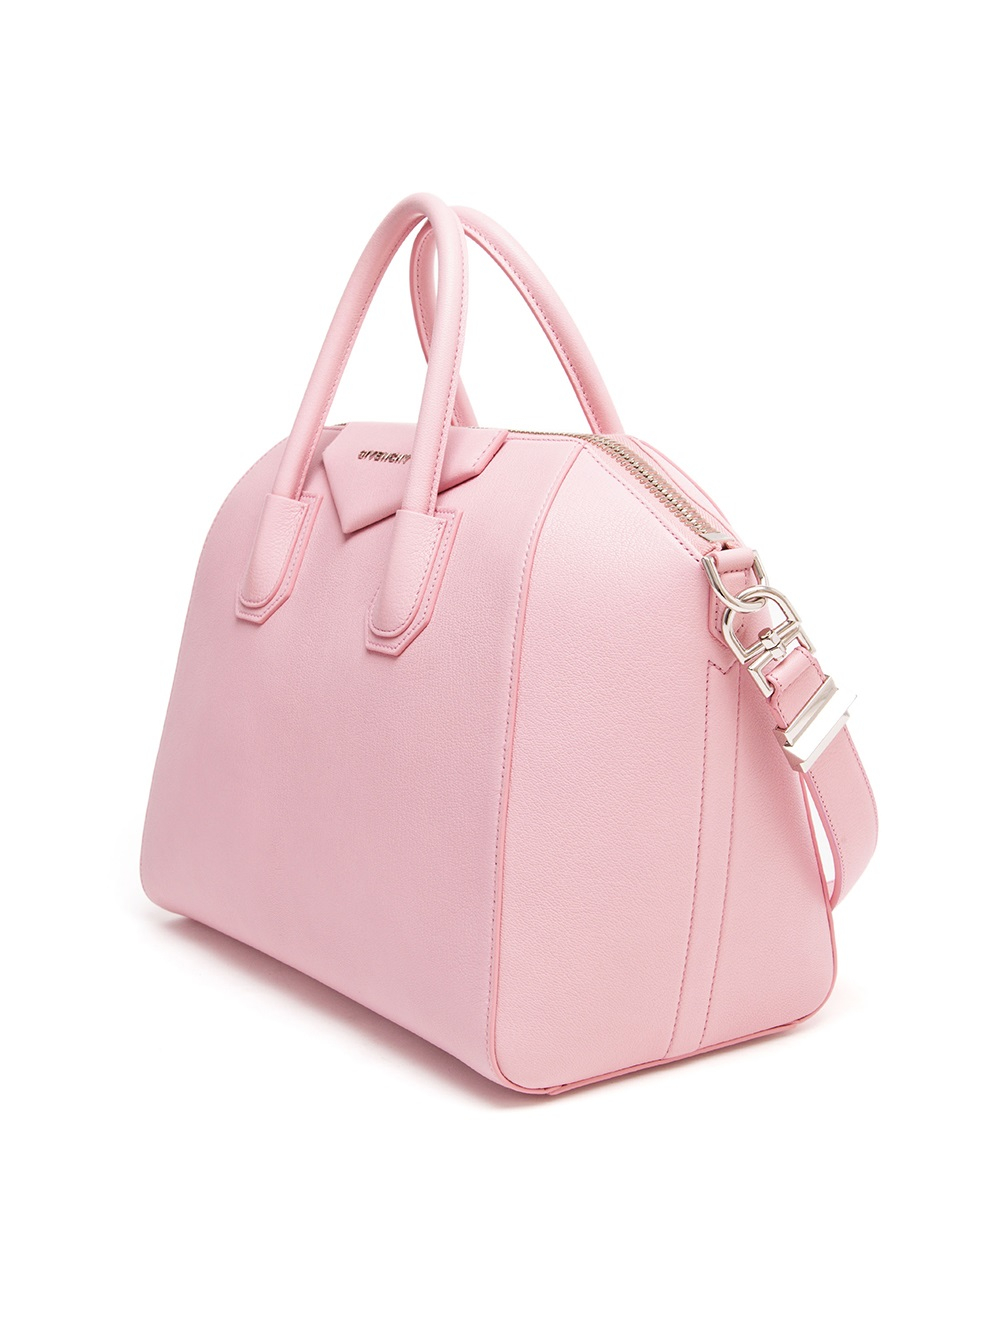 Lyst - Givenchy Antigona Grained Leather Tote Bag in Pink ad08fd2393b46